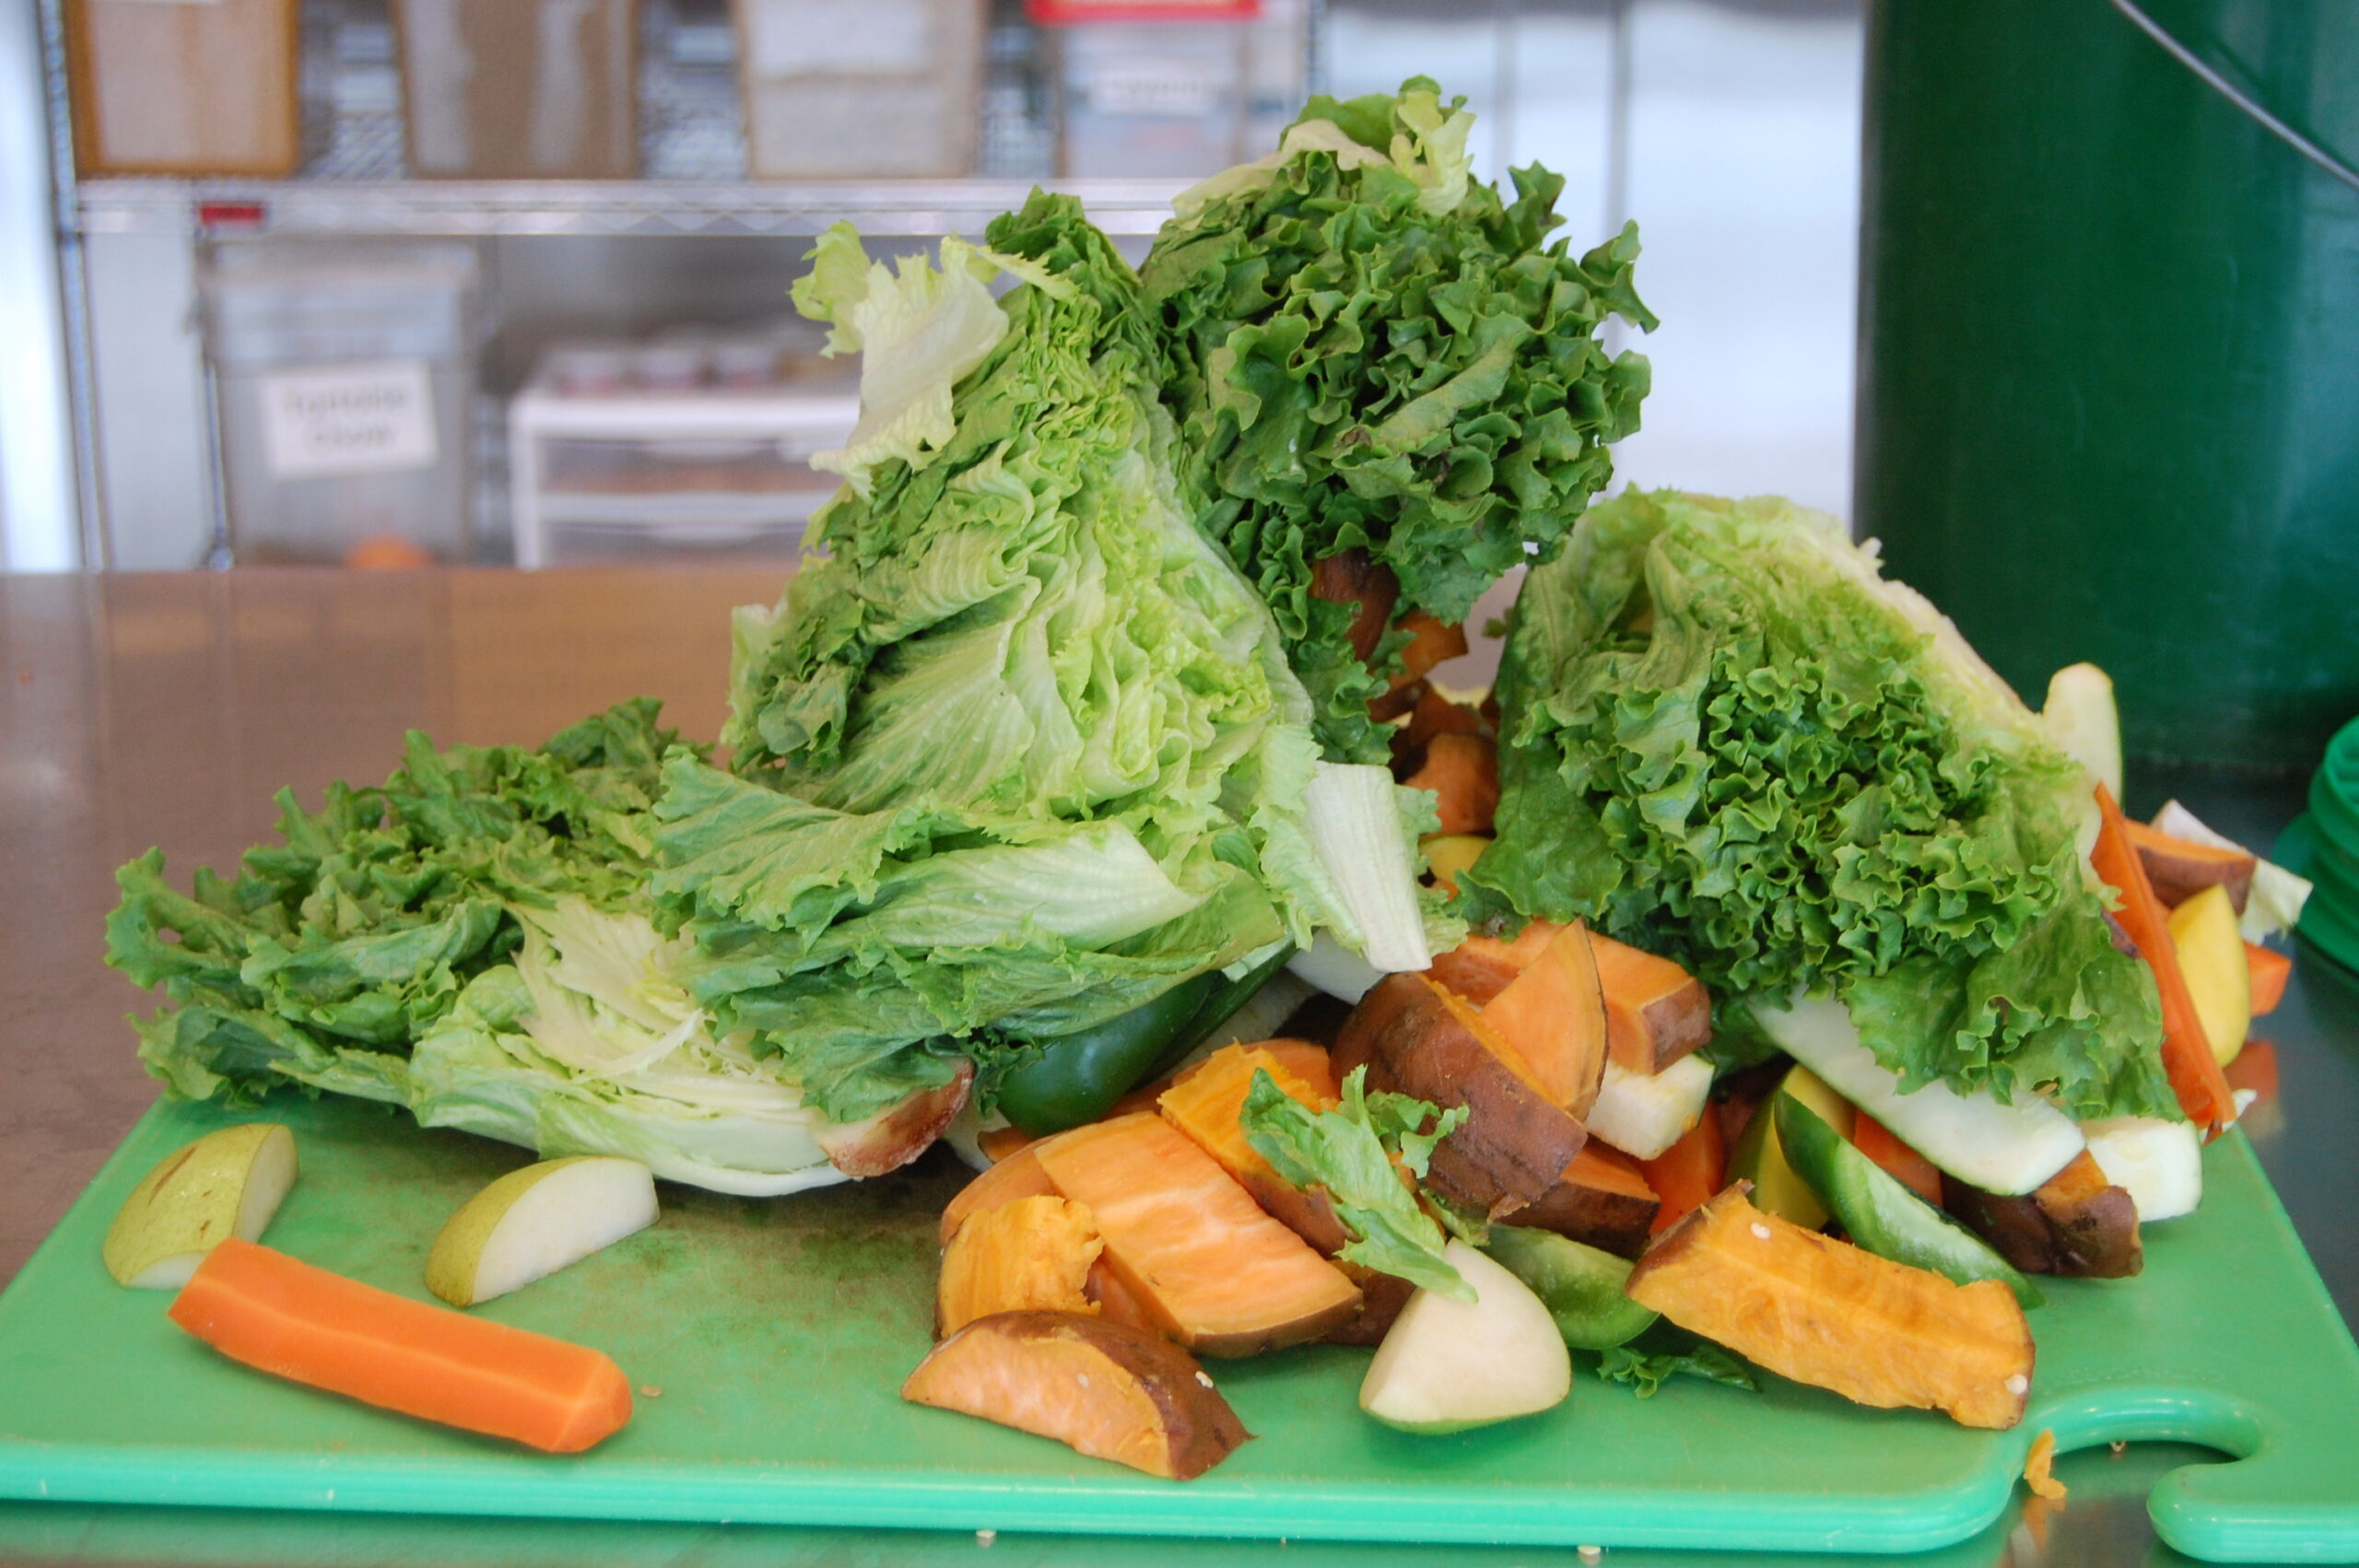 pile of chopped lettuce, carrots, apples, sweet potato, peppers on green cutting board